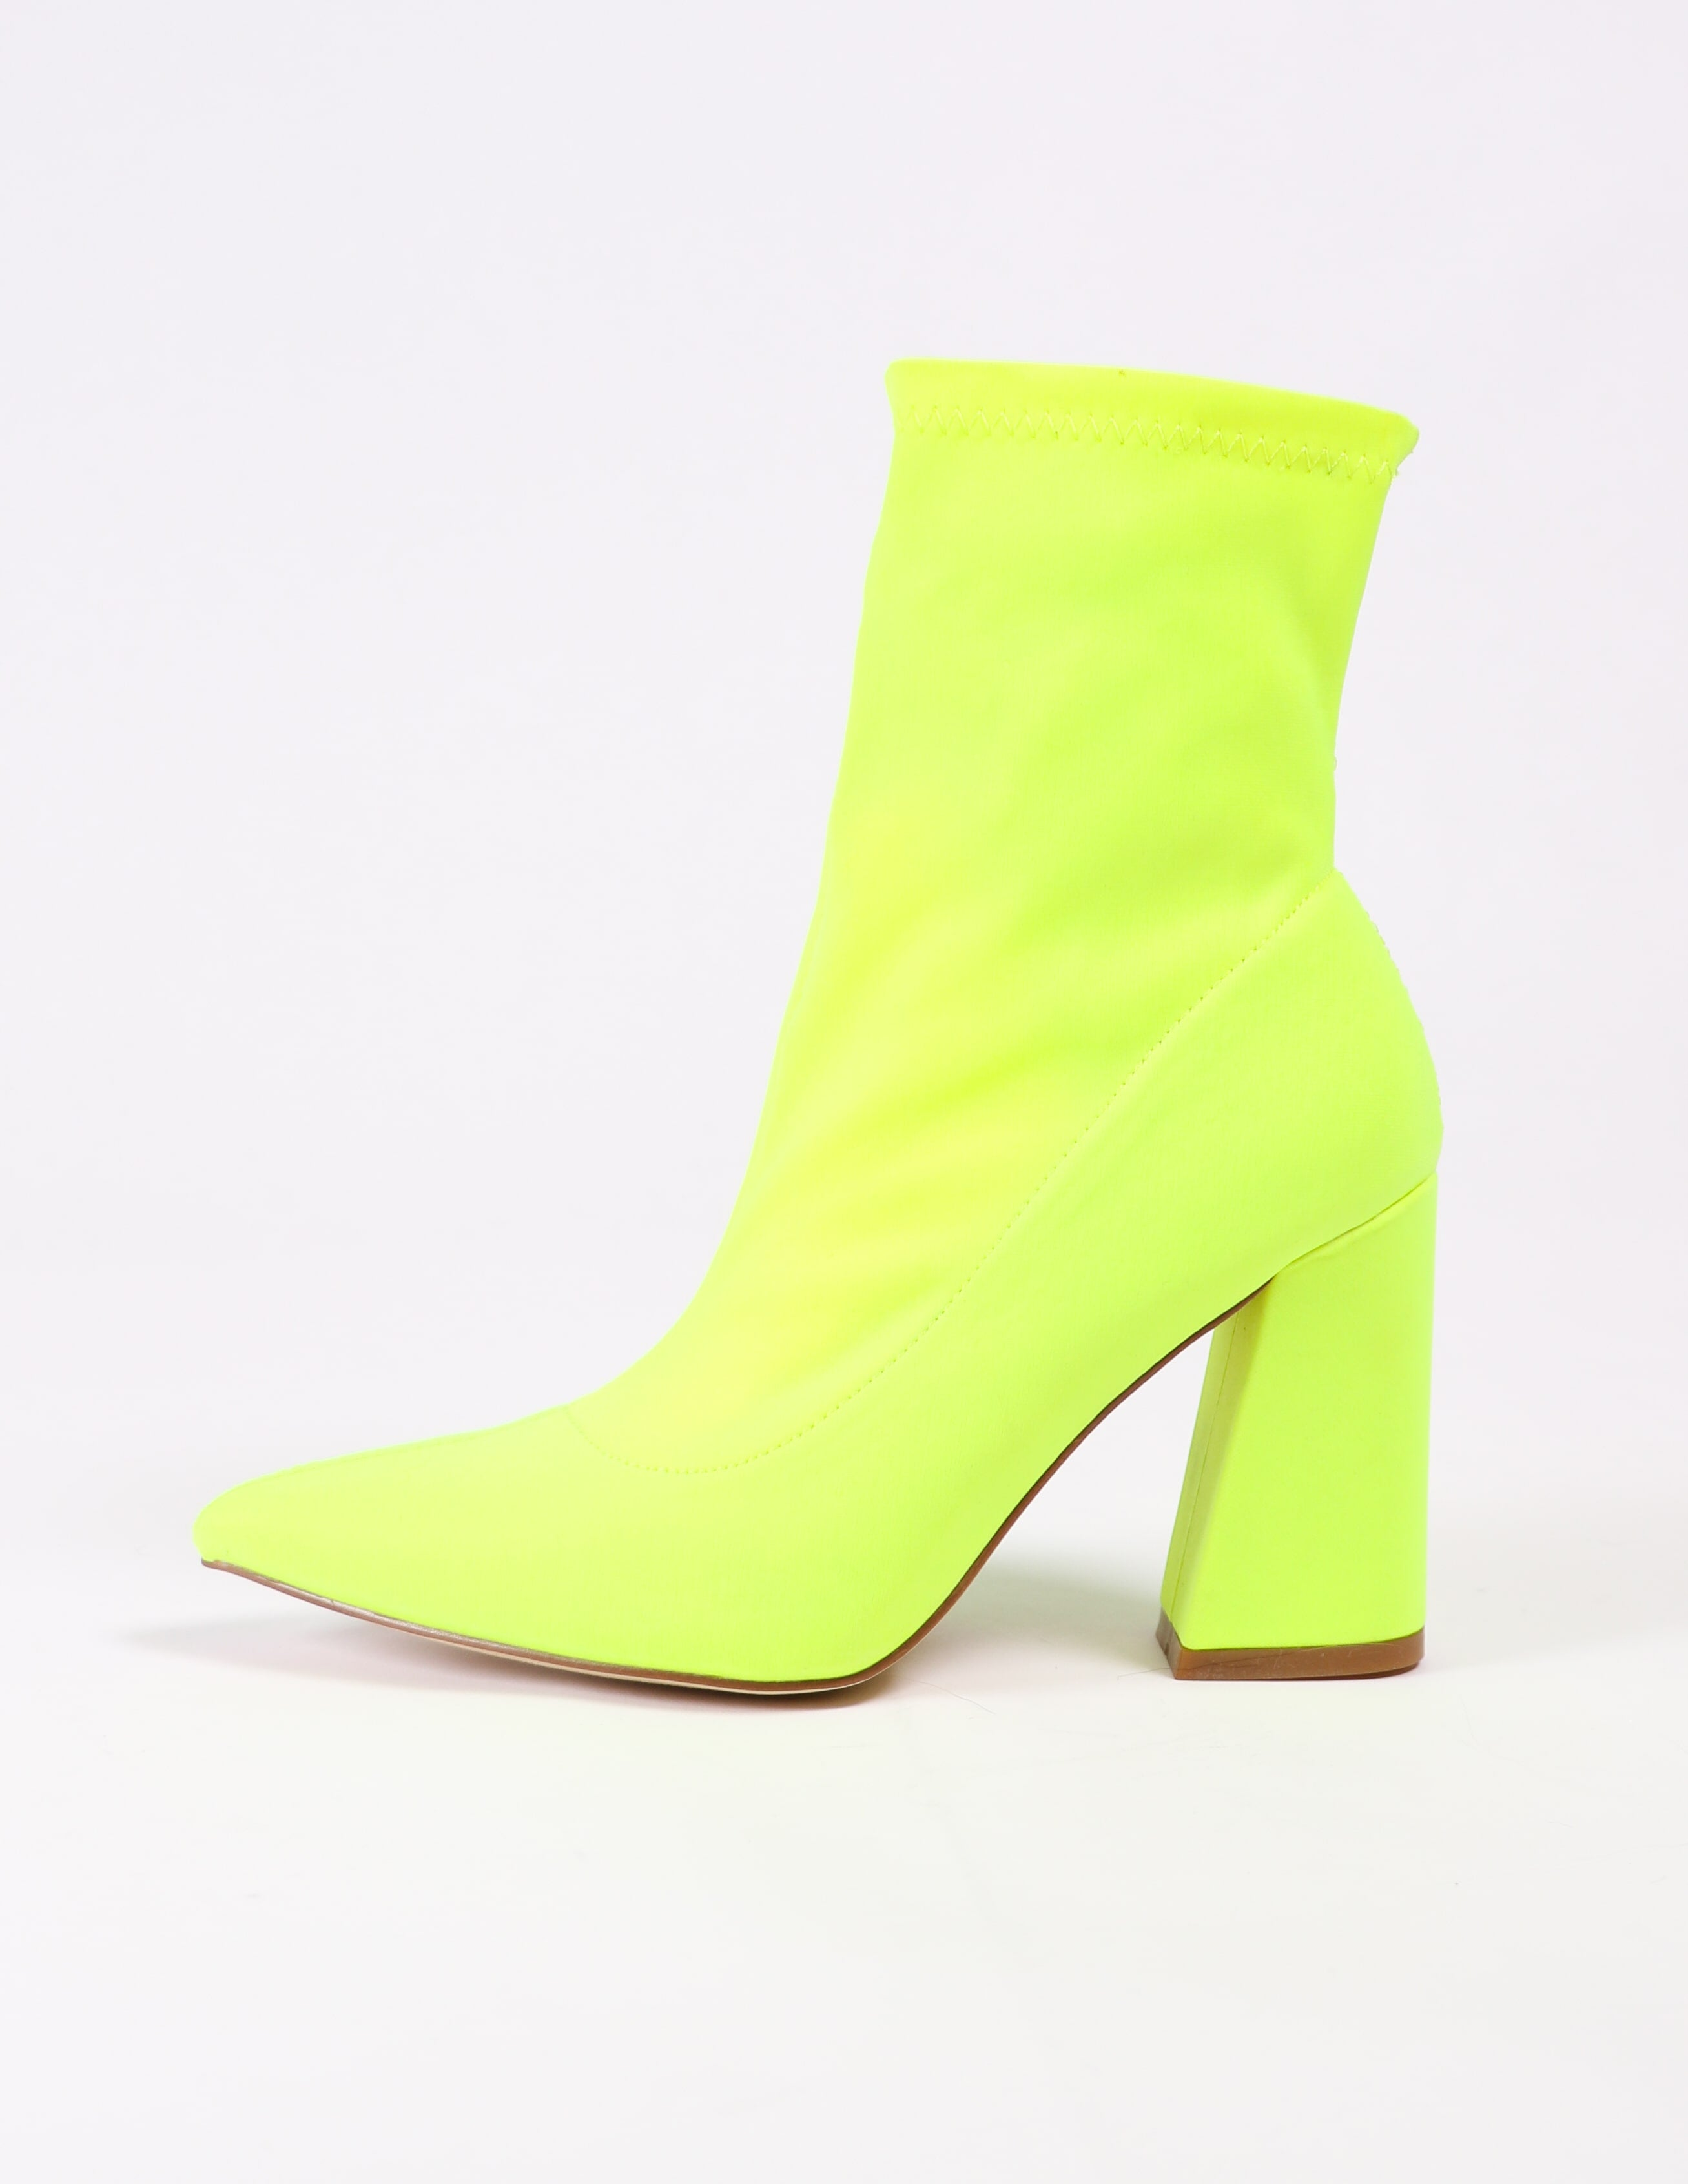 side of the highlight of my life bootie in lime green - elle bleu shoes